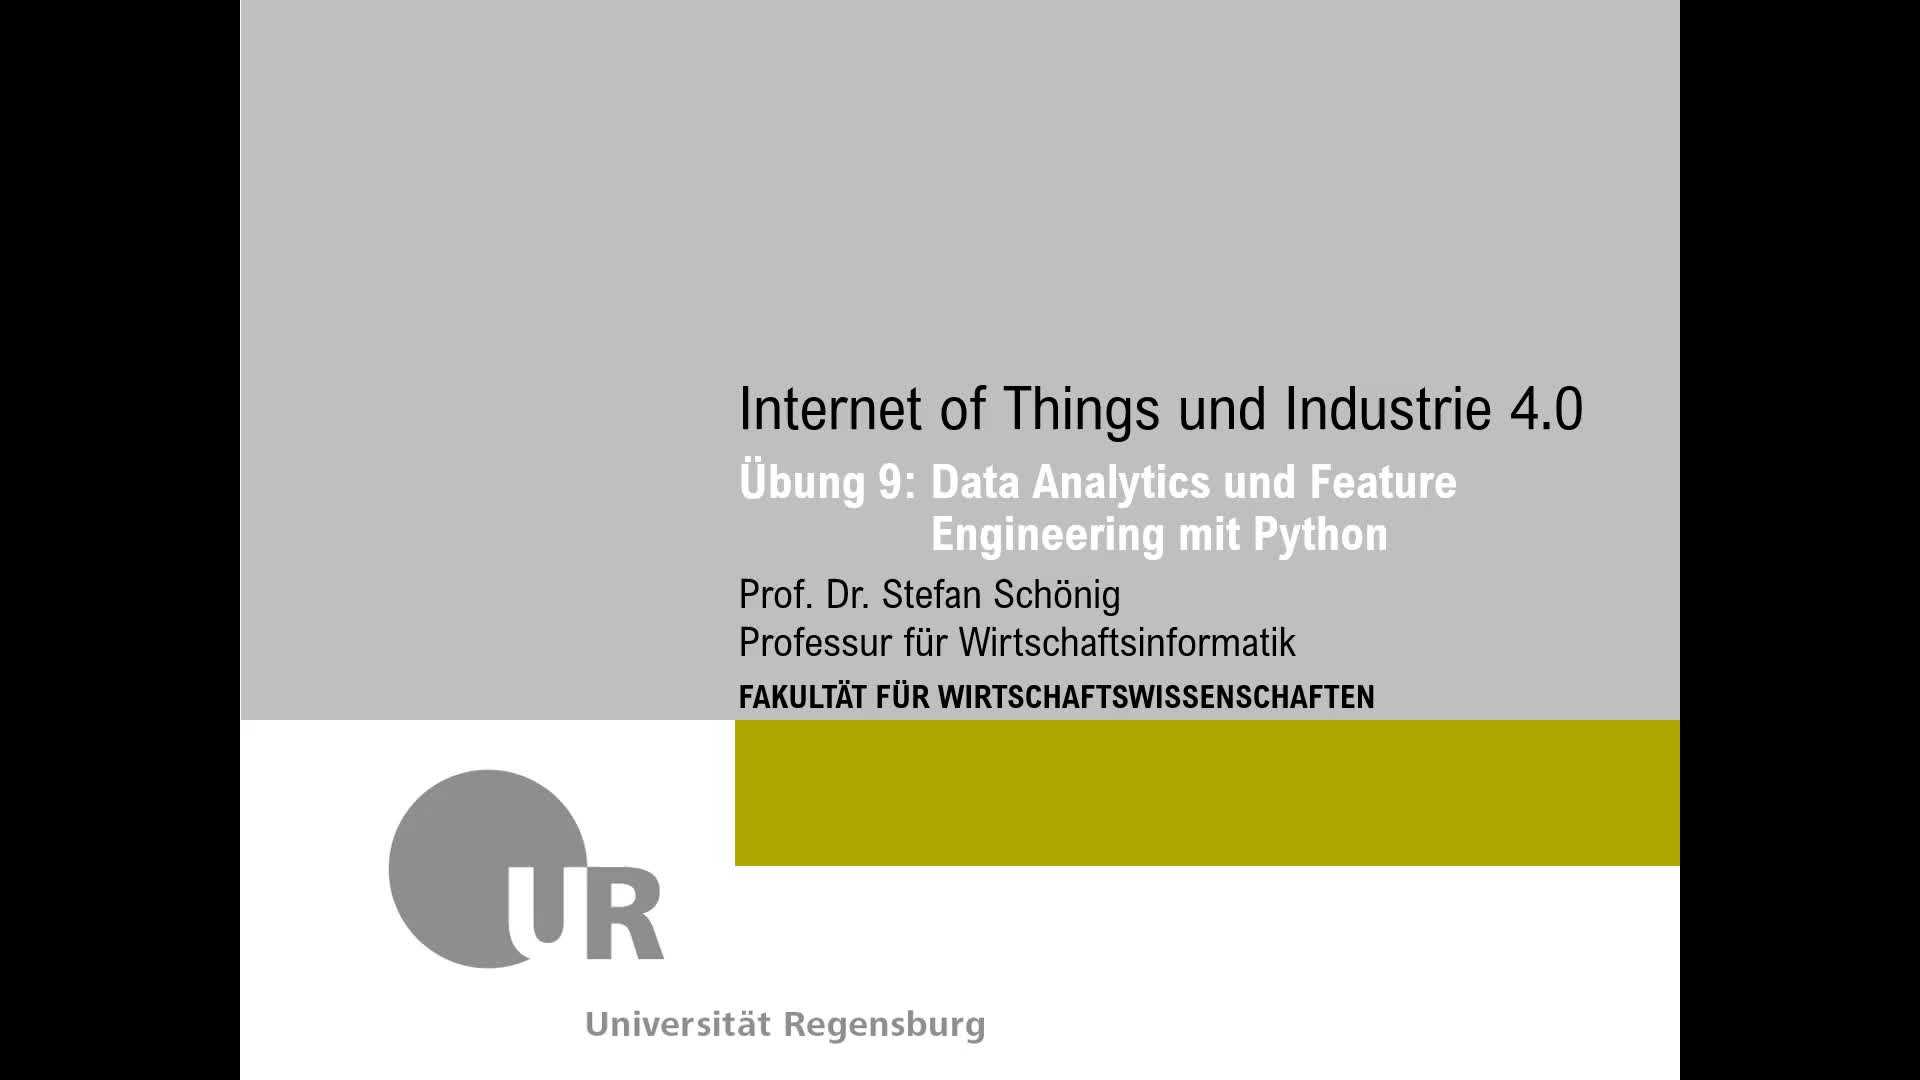 SS 2020 - Internet of Things und Industrie 4.0 - Übung 9 (Data Analytics mit Python)